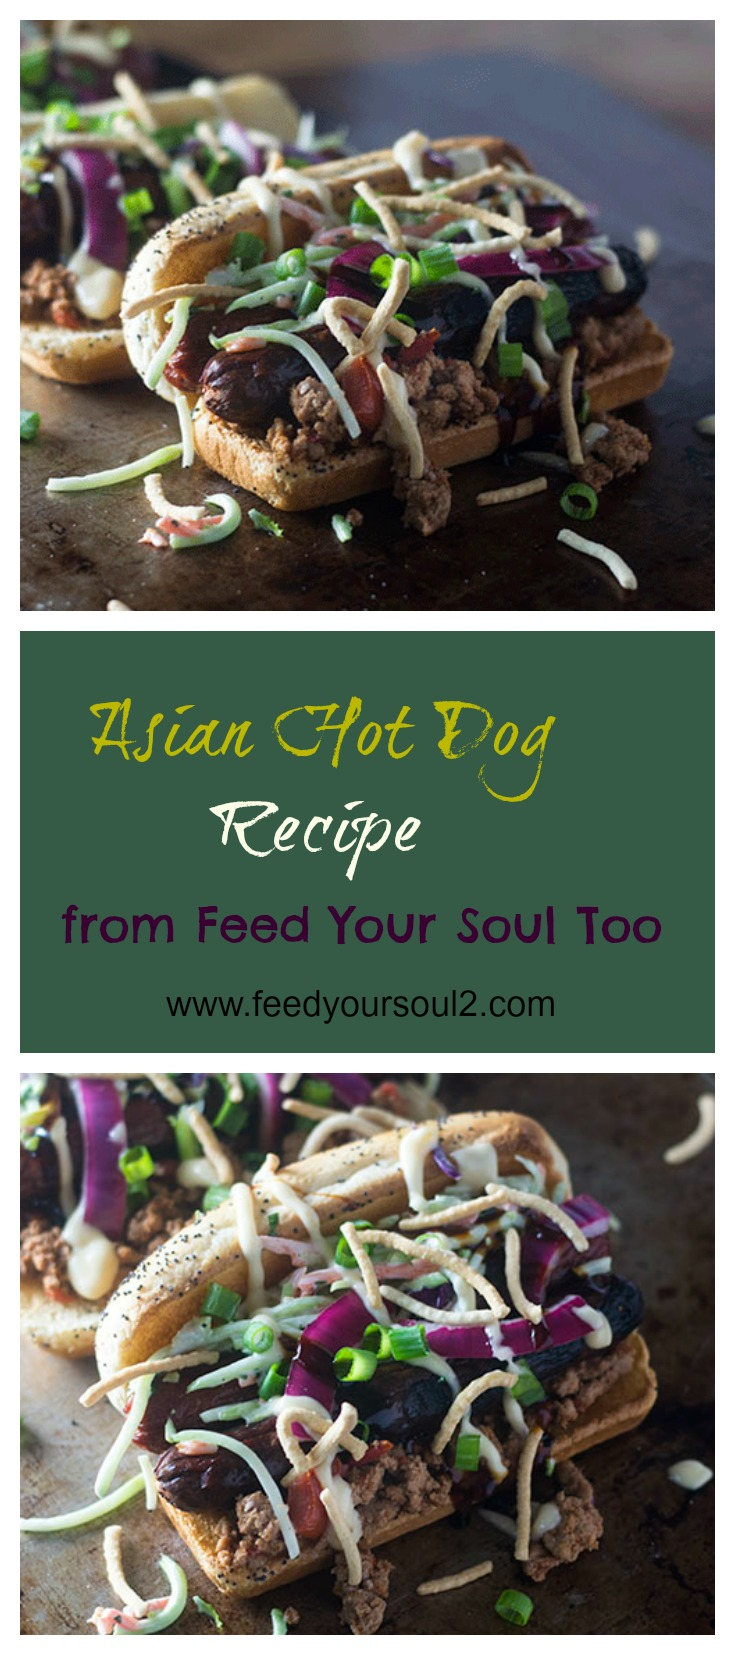 Asian Hot Dog Recipe #promotion #Asianrecipe #kosher #hotdog | feedyoursoul2.com